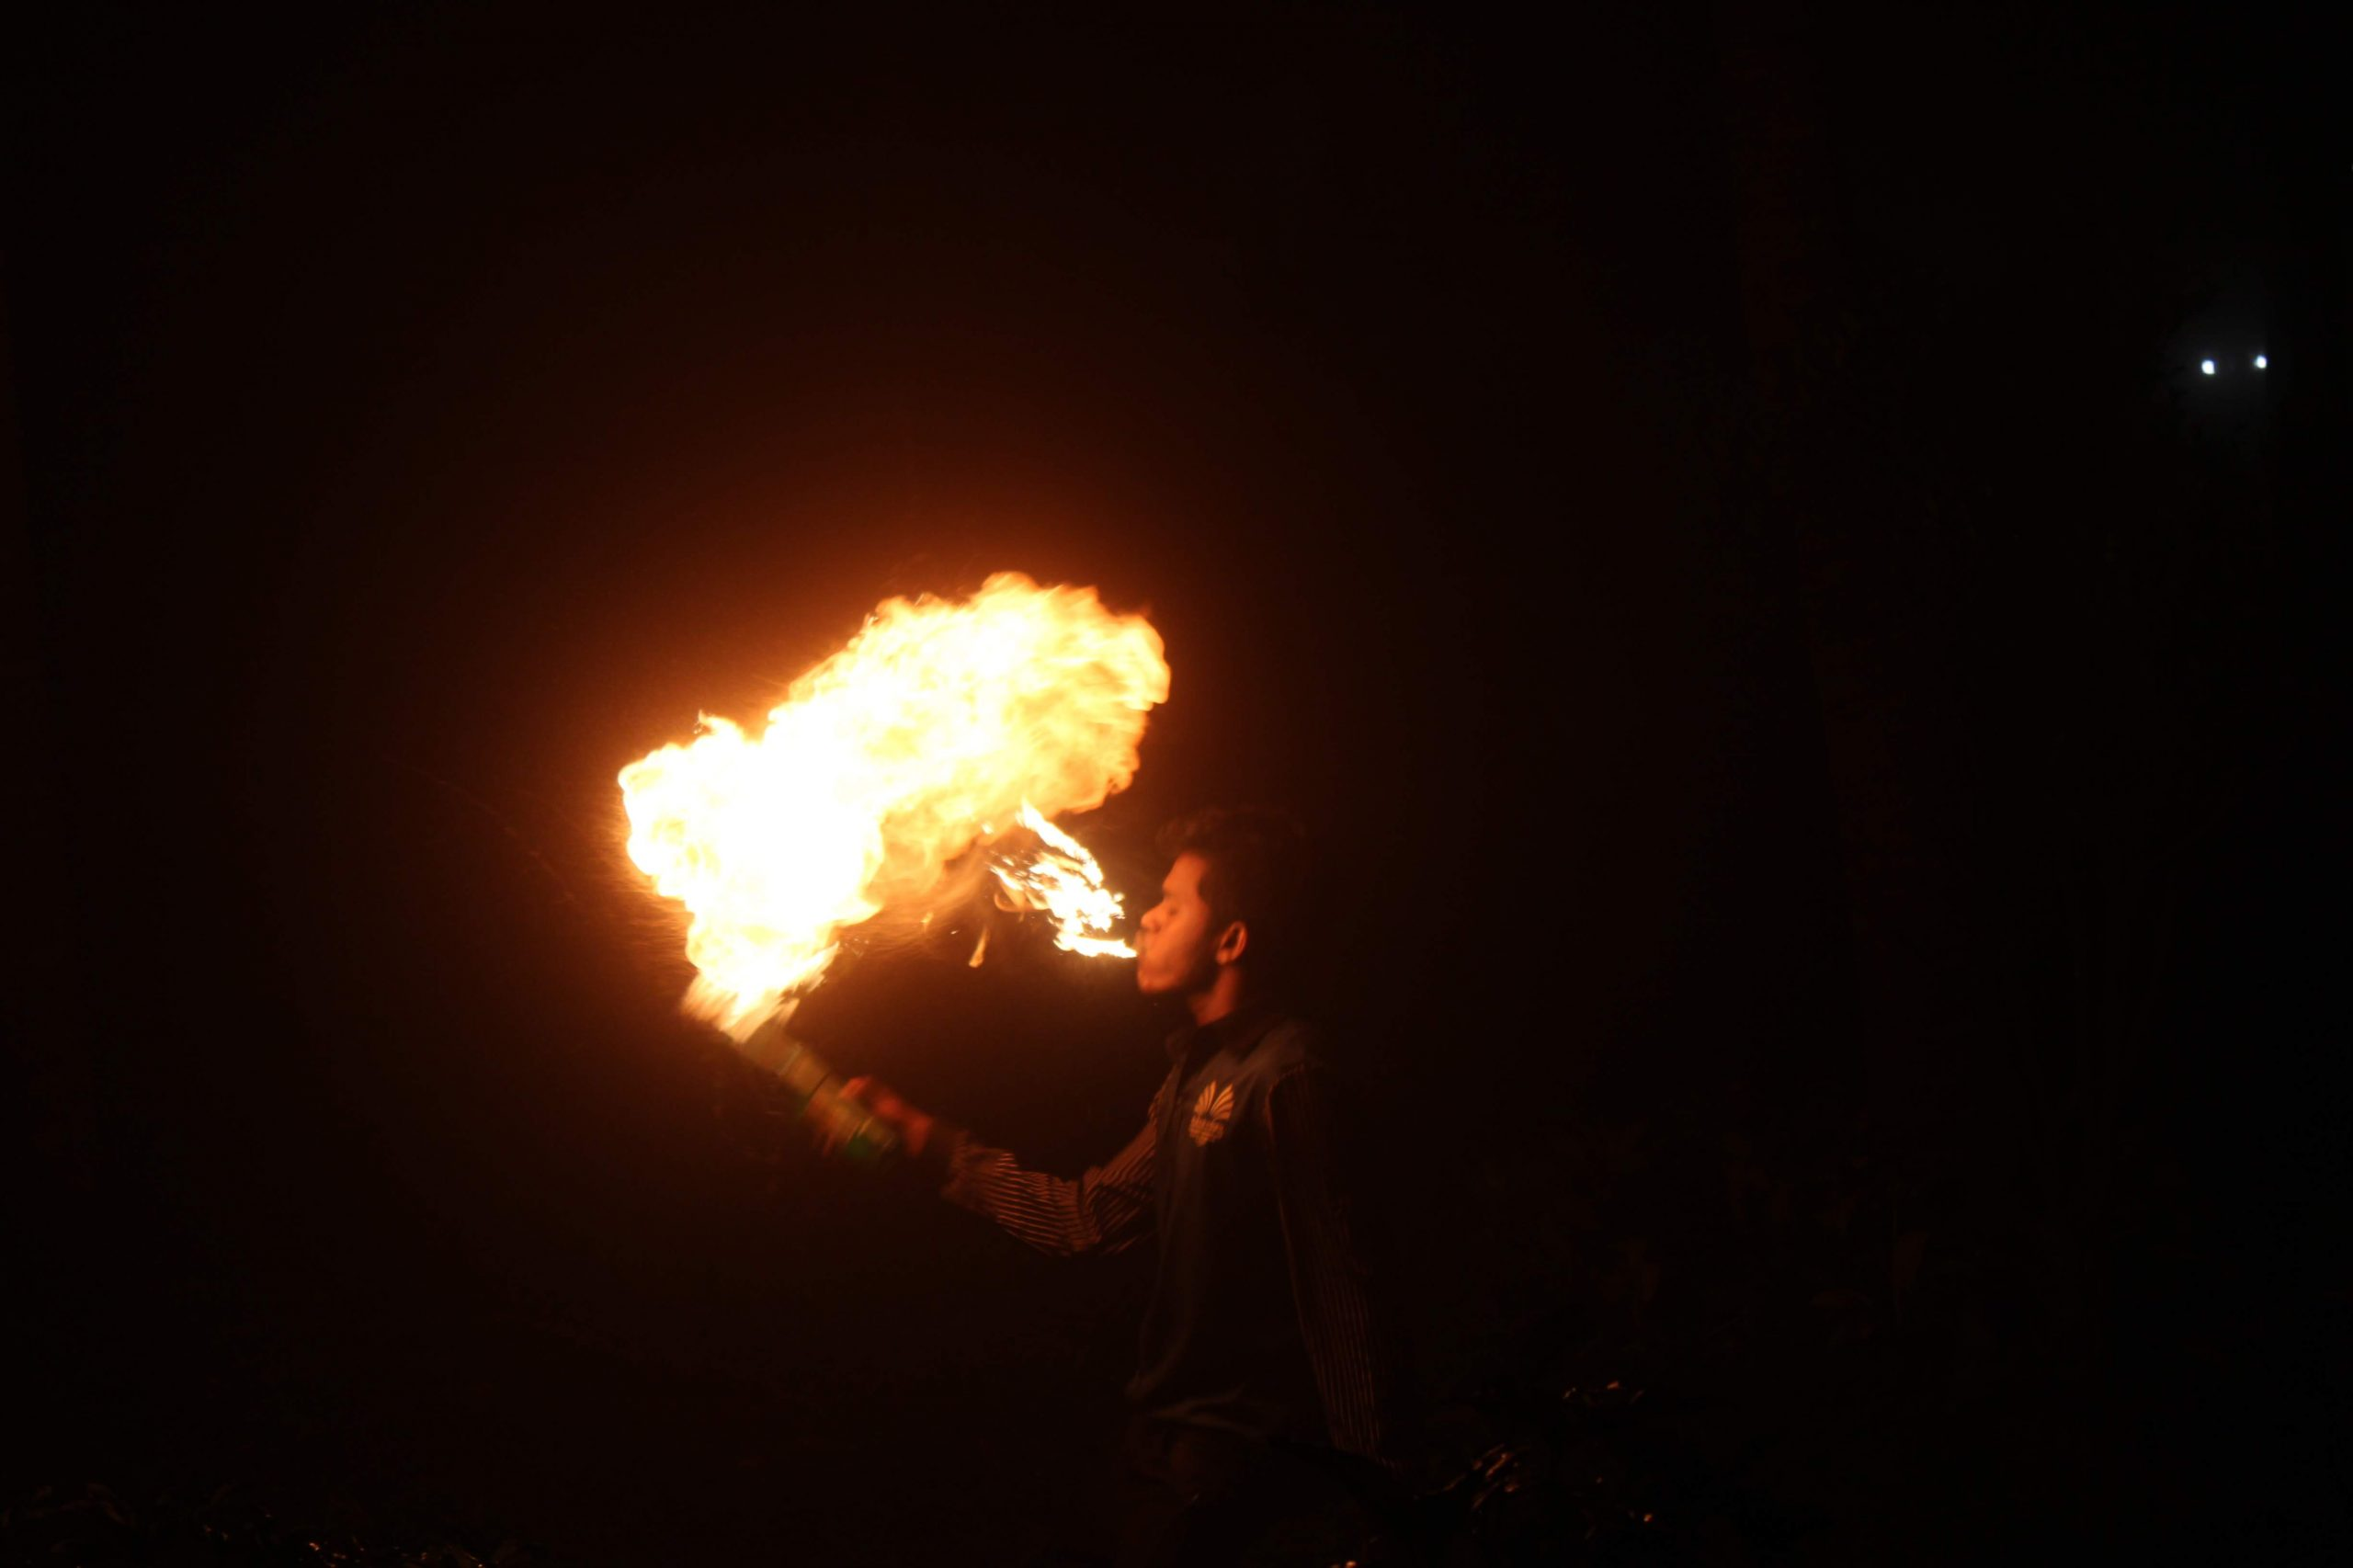 Man performing with fire